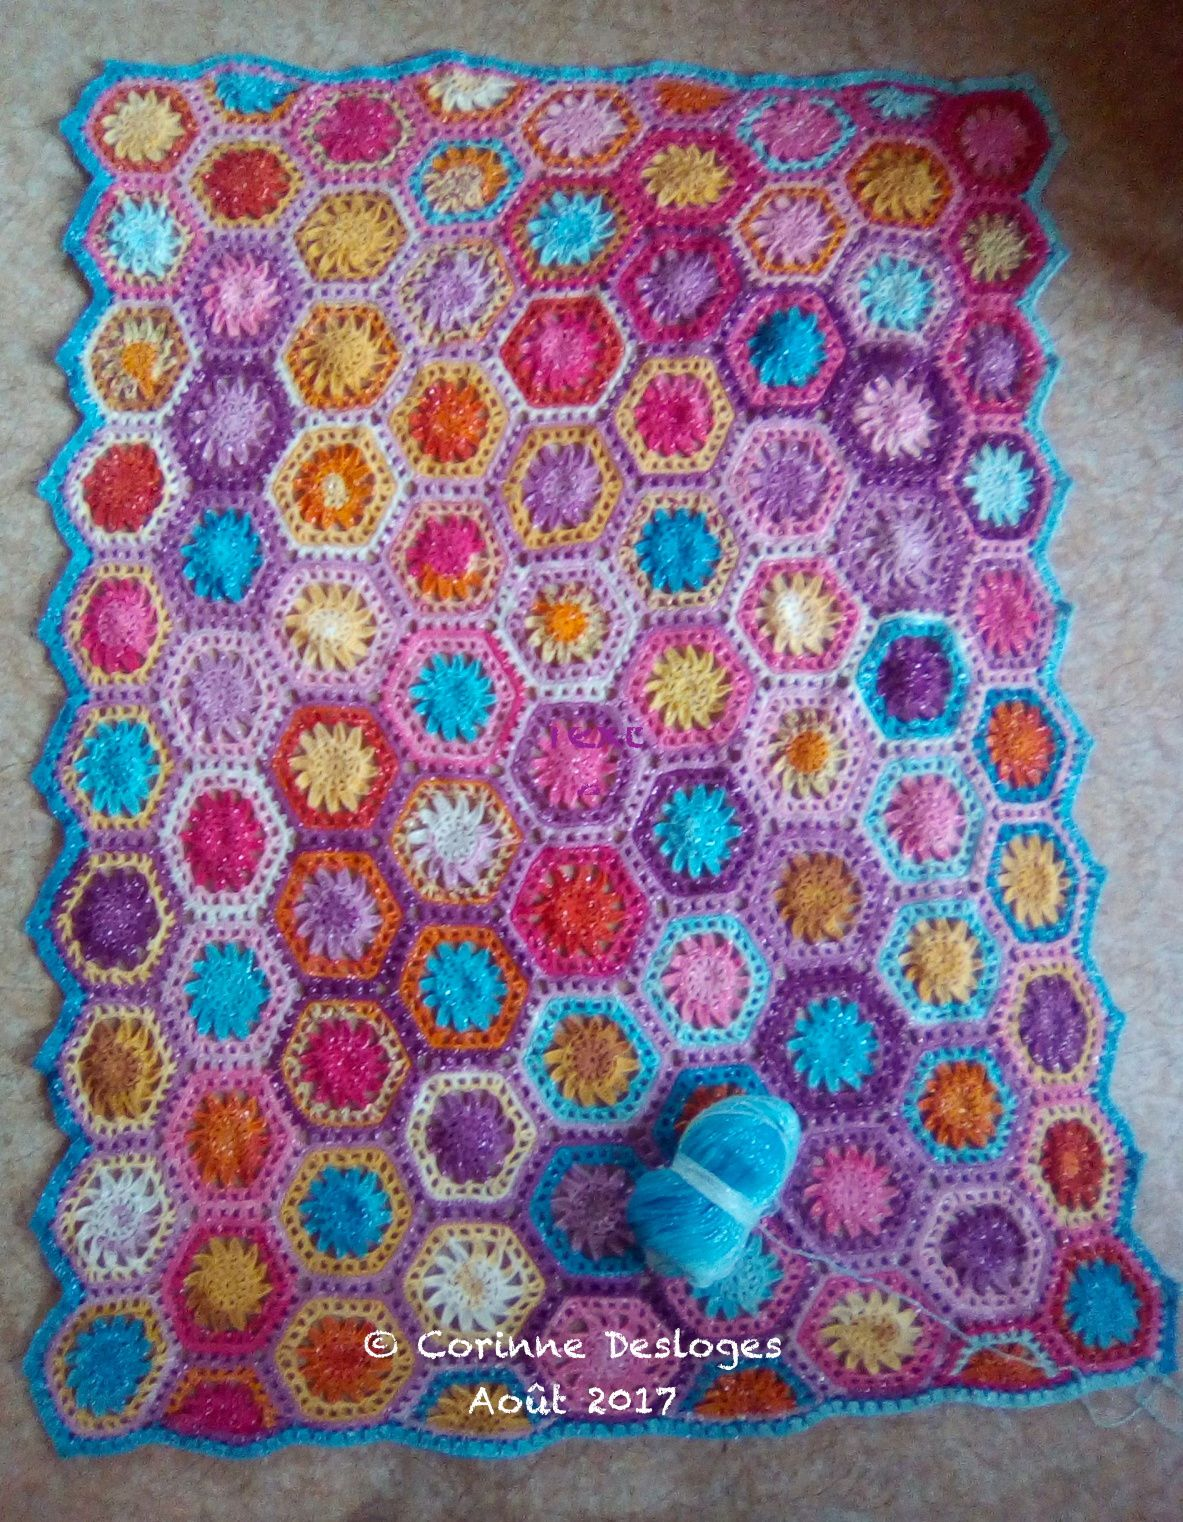 CROCHET : Hexaplaid, bordure en cours.